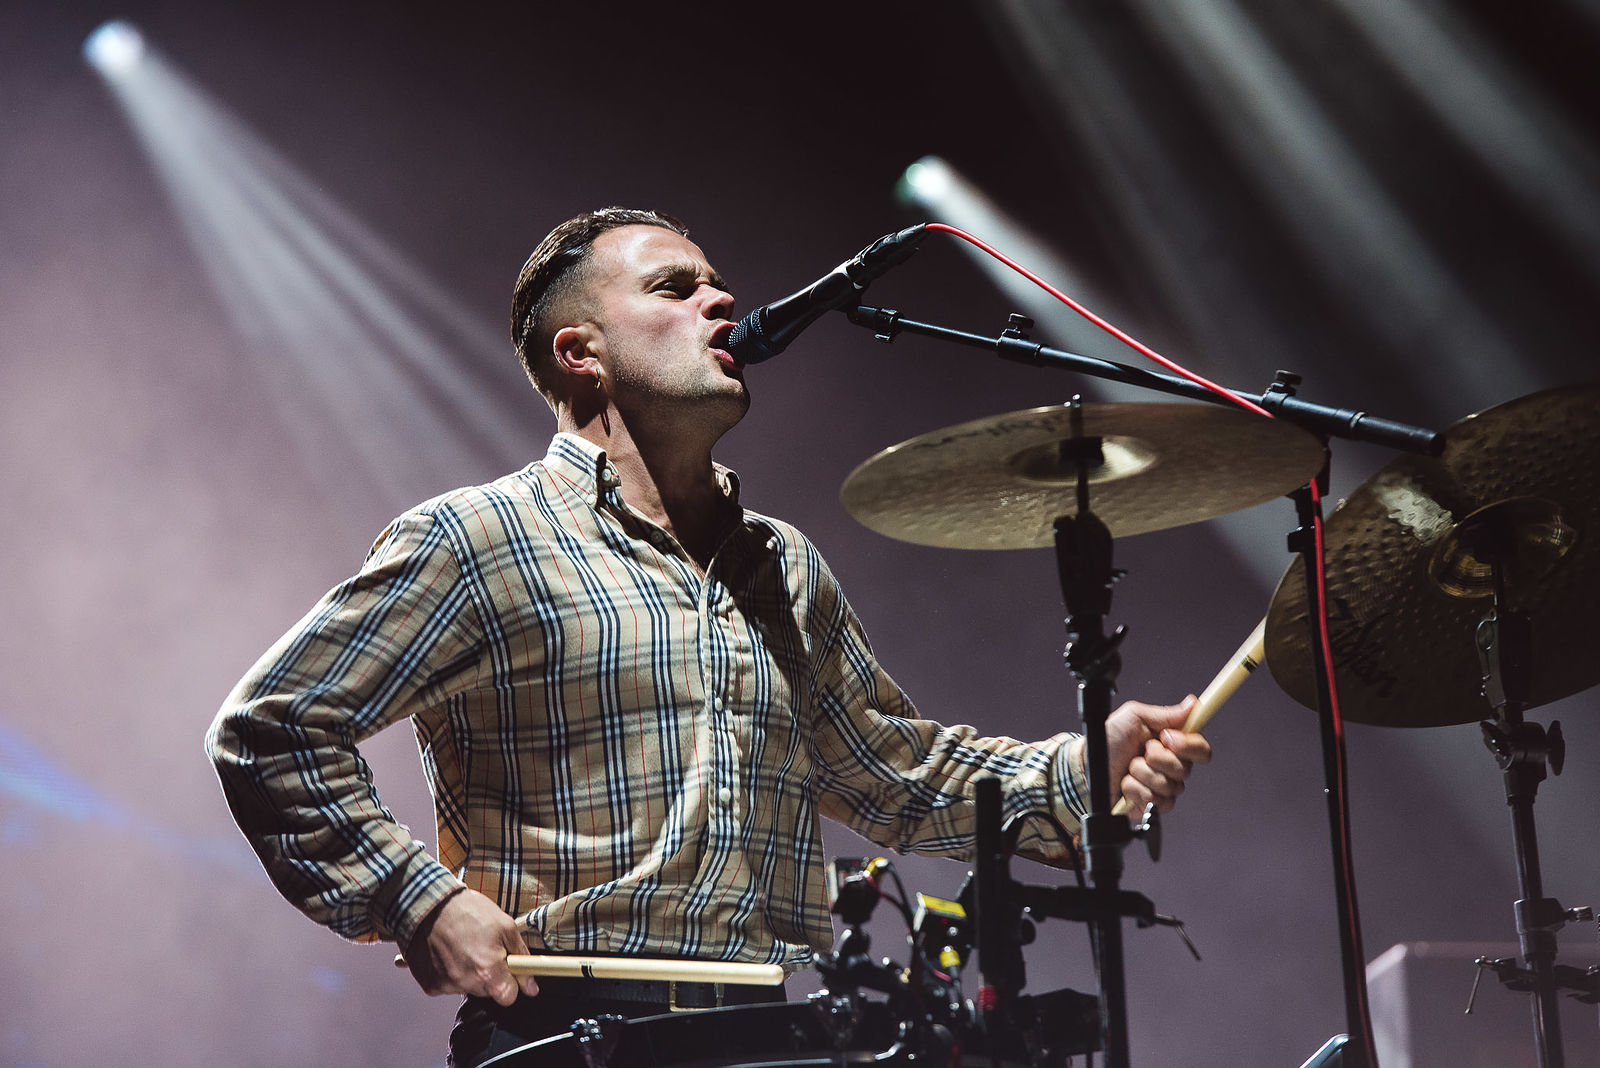 SLAVES PERFORMING ON BBC RADIO 1 STAGE AT LEEDS FESTIVAL 2018 - 24.08.2018  PICTURE BY: CAI DIXON